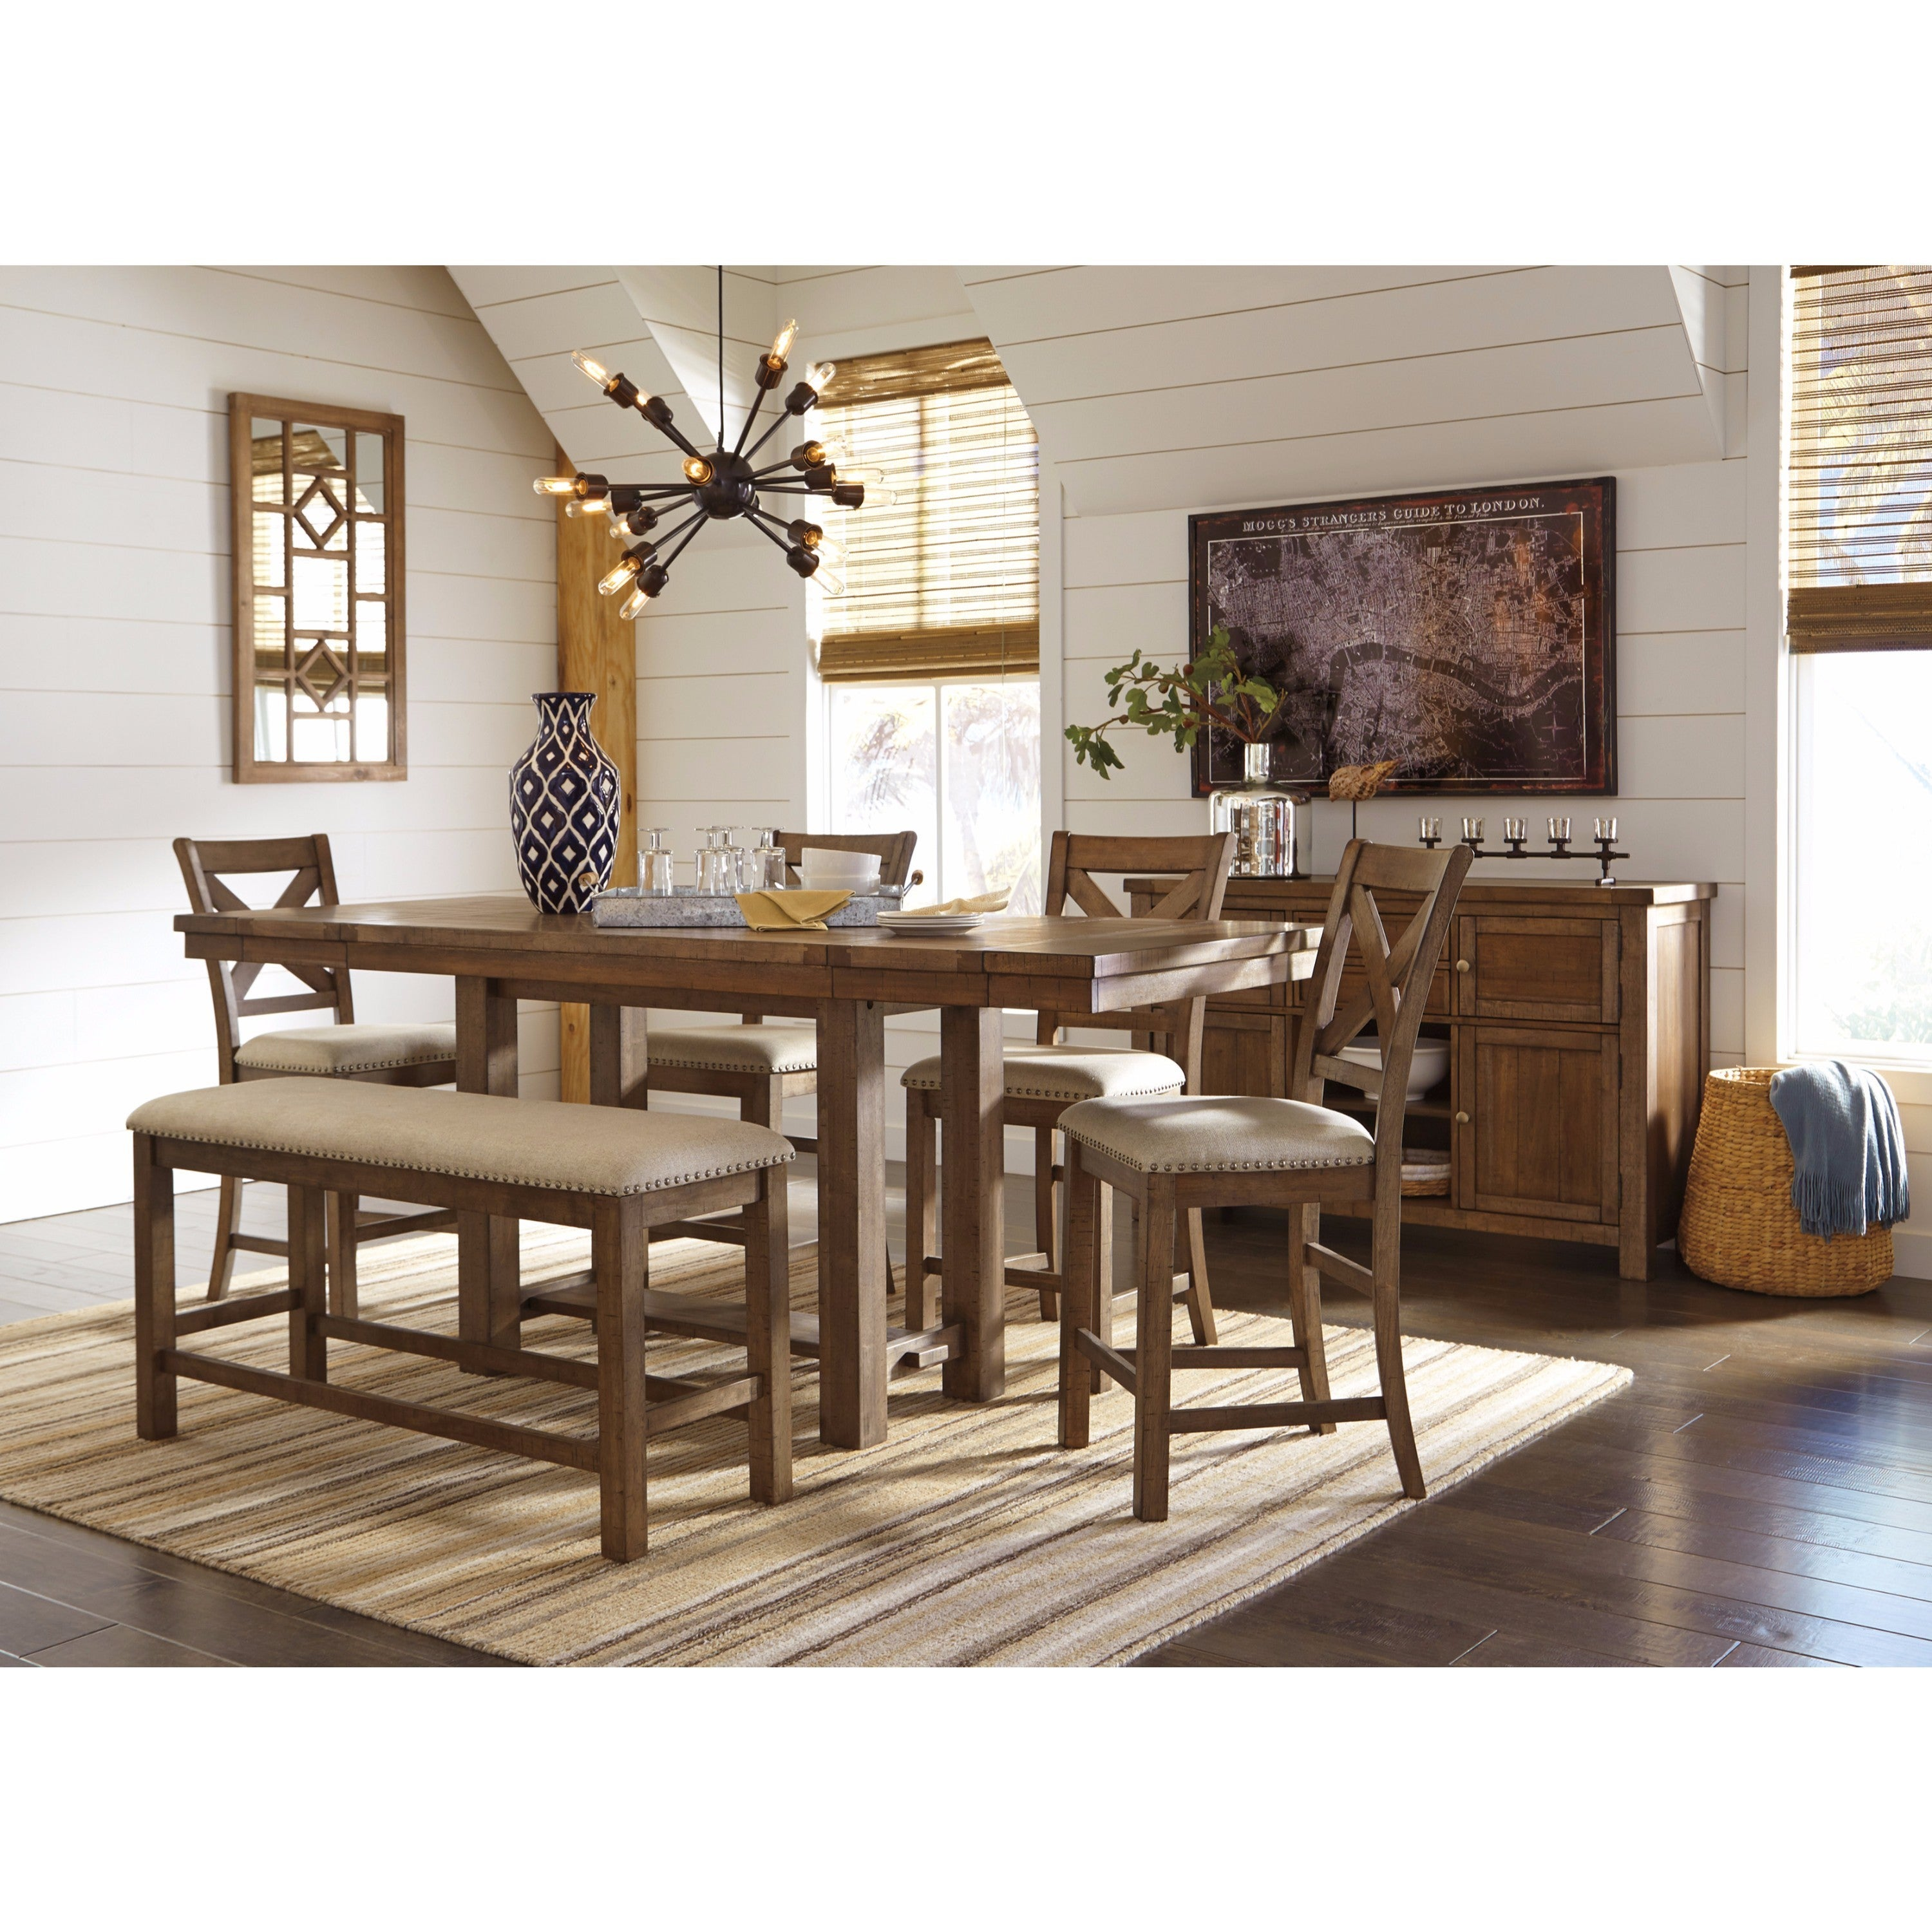 Signature Design By Ashley Moriville Beige Dining Set   Free Shipping Today    Overstock.com   21139564